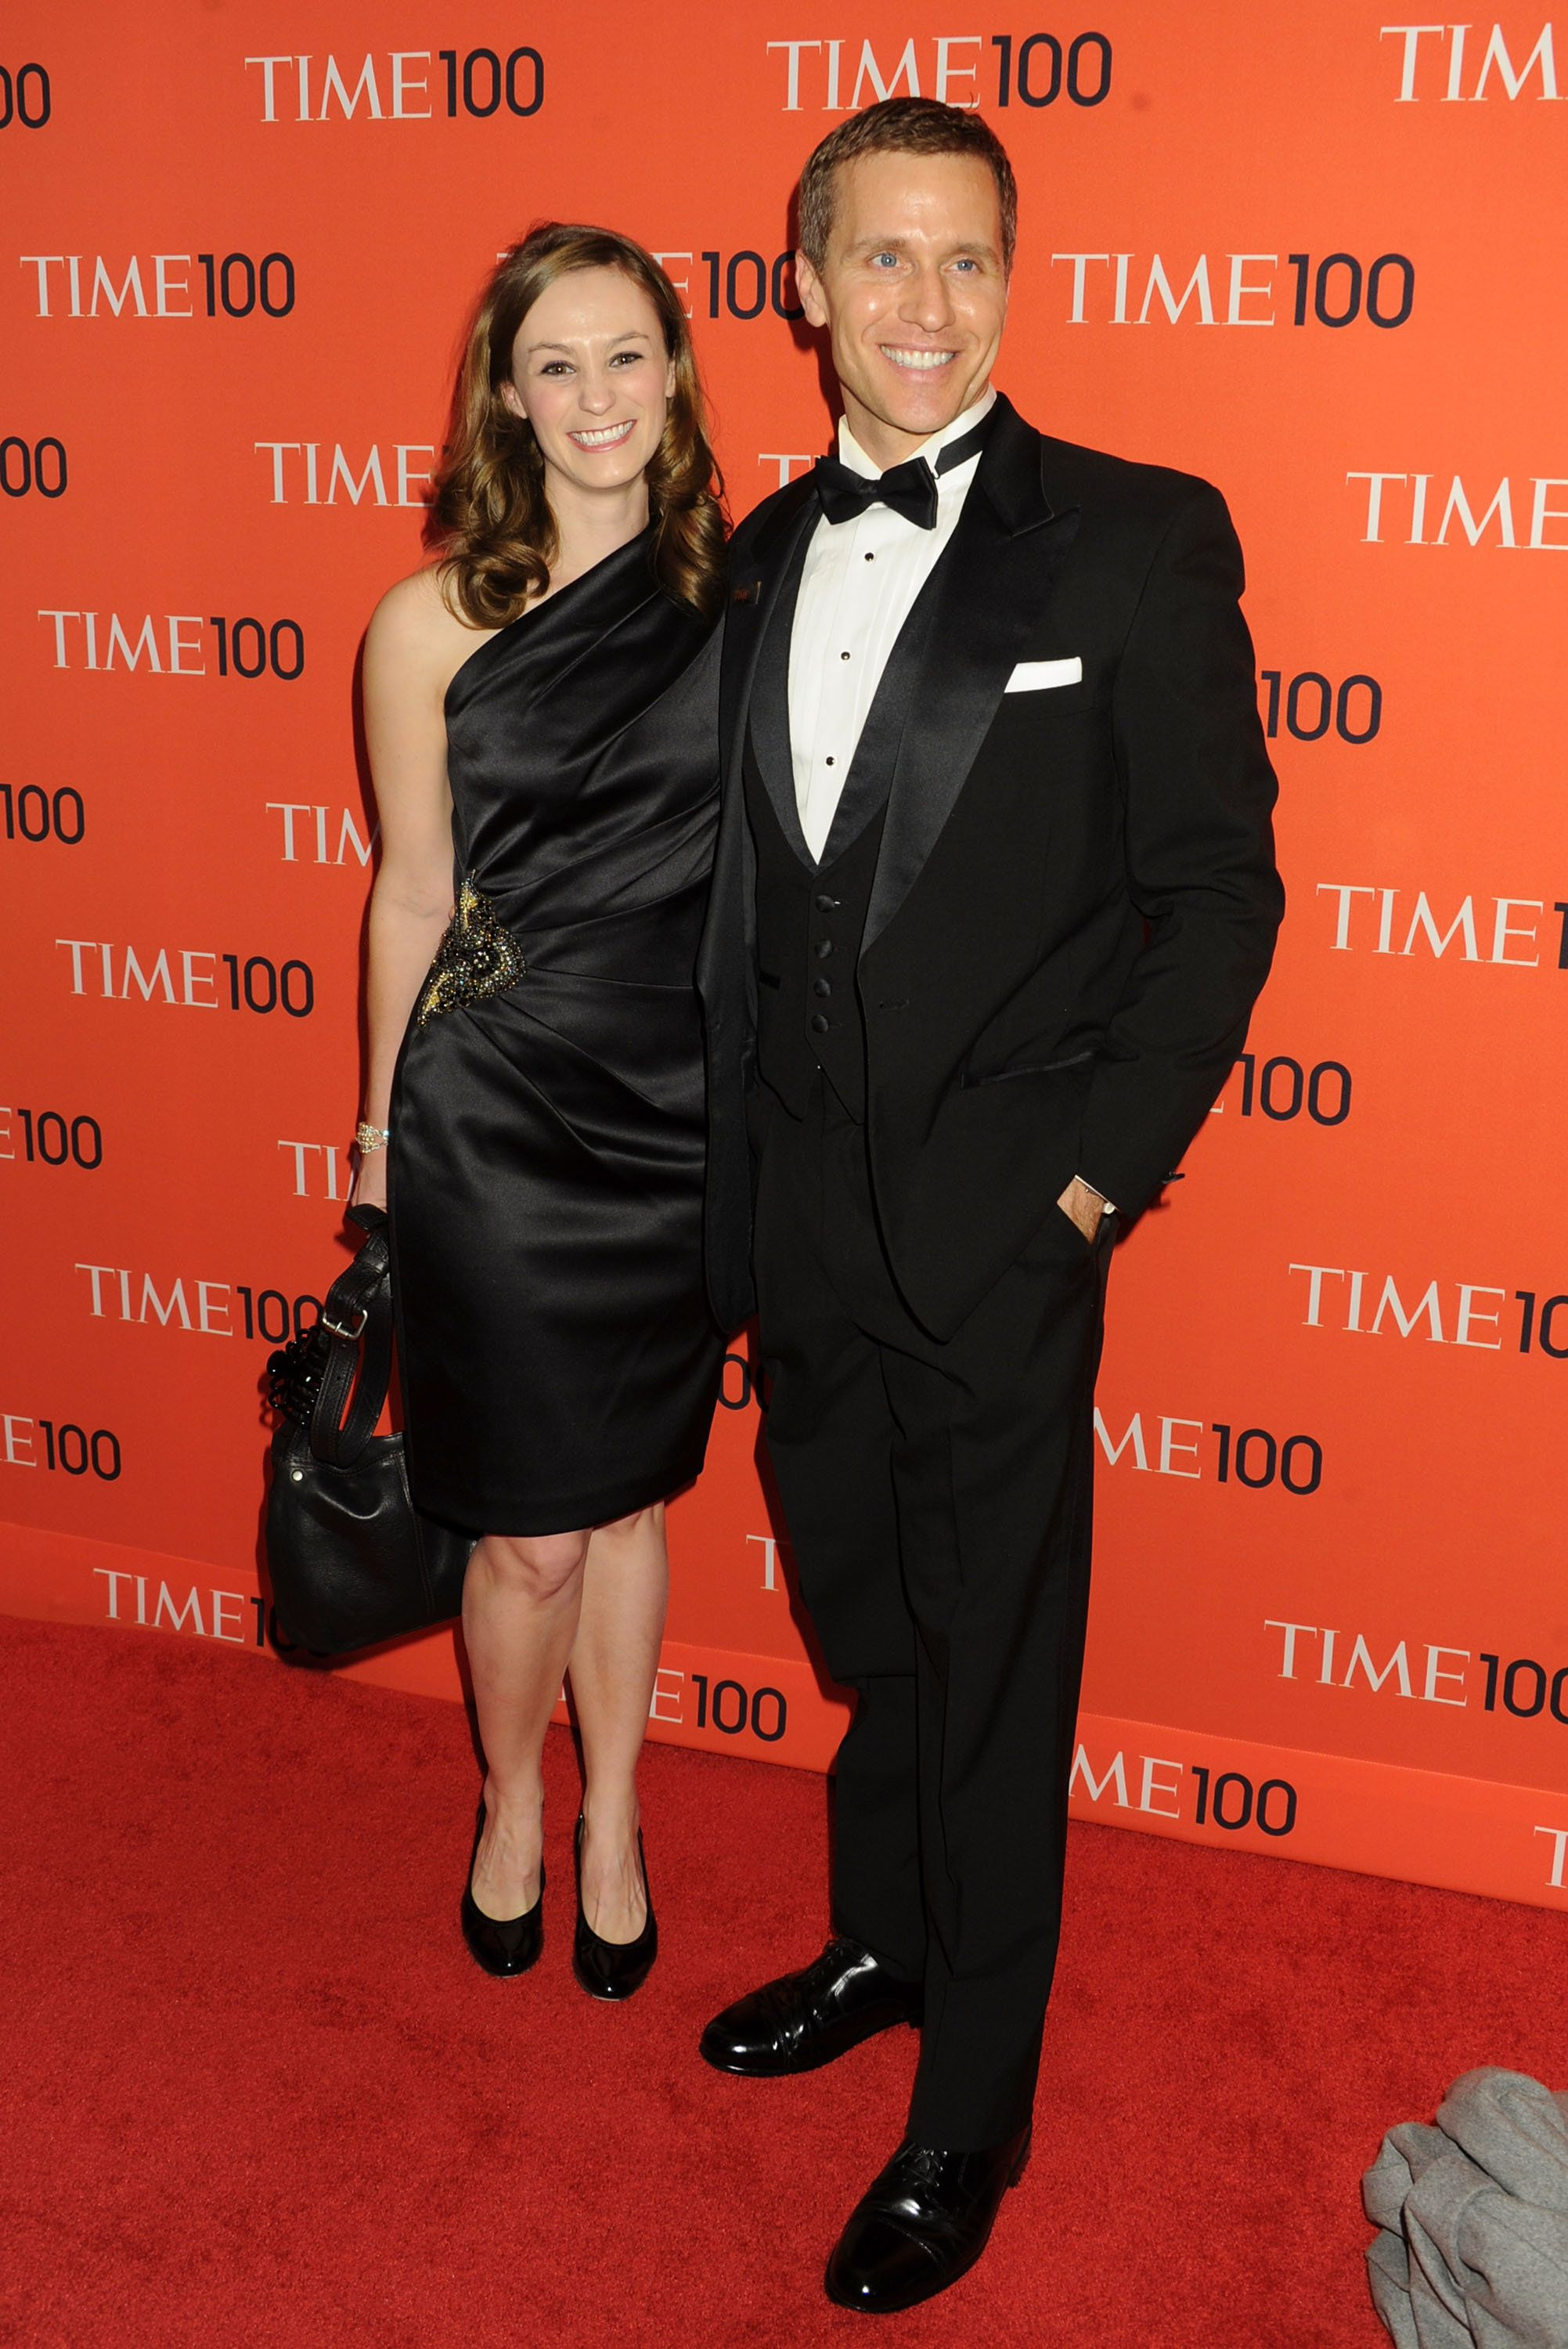 Governor-elect Eric Greitens and his wife attended the 2013 Time 100 Gala in New York City.